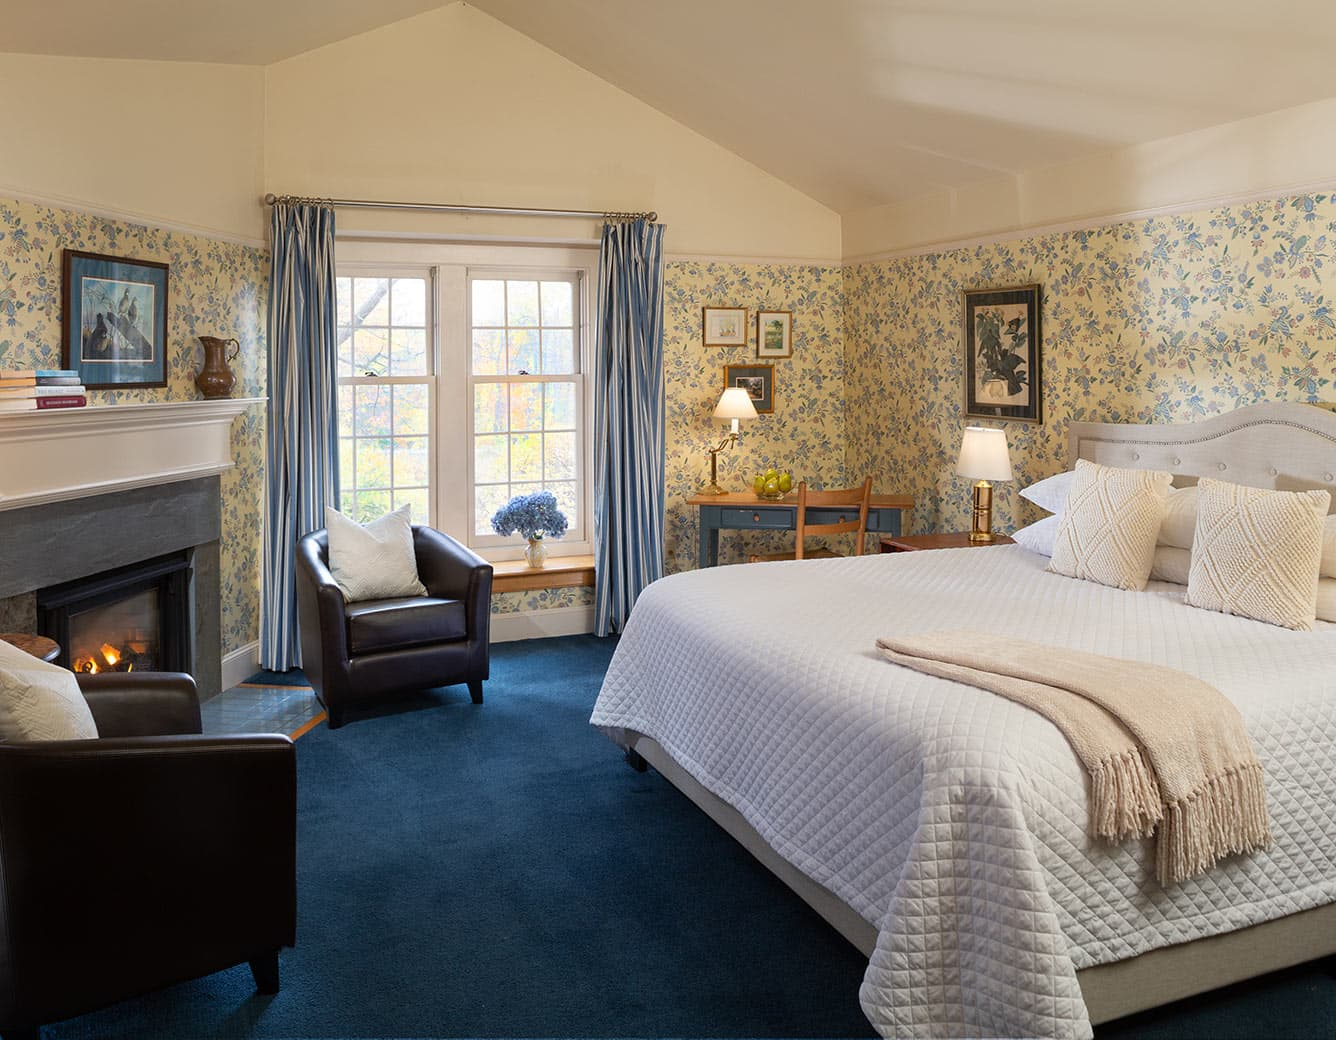 Bed, Fireplace, two leather chairs in Room 21